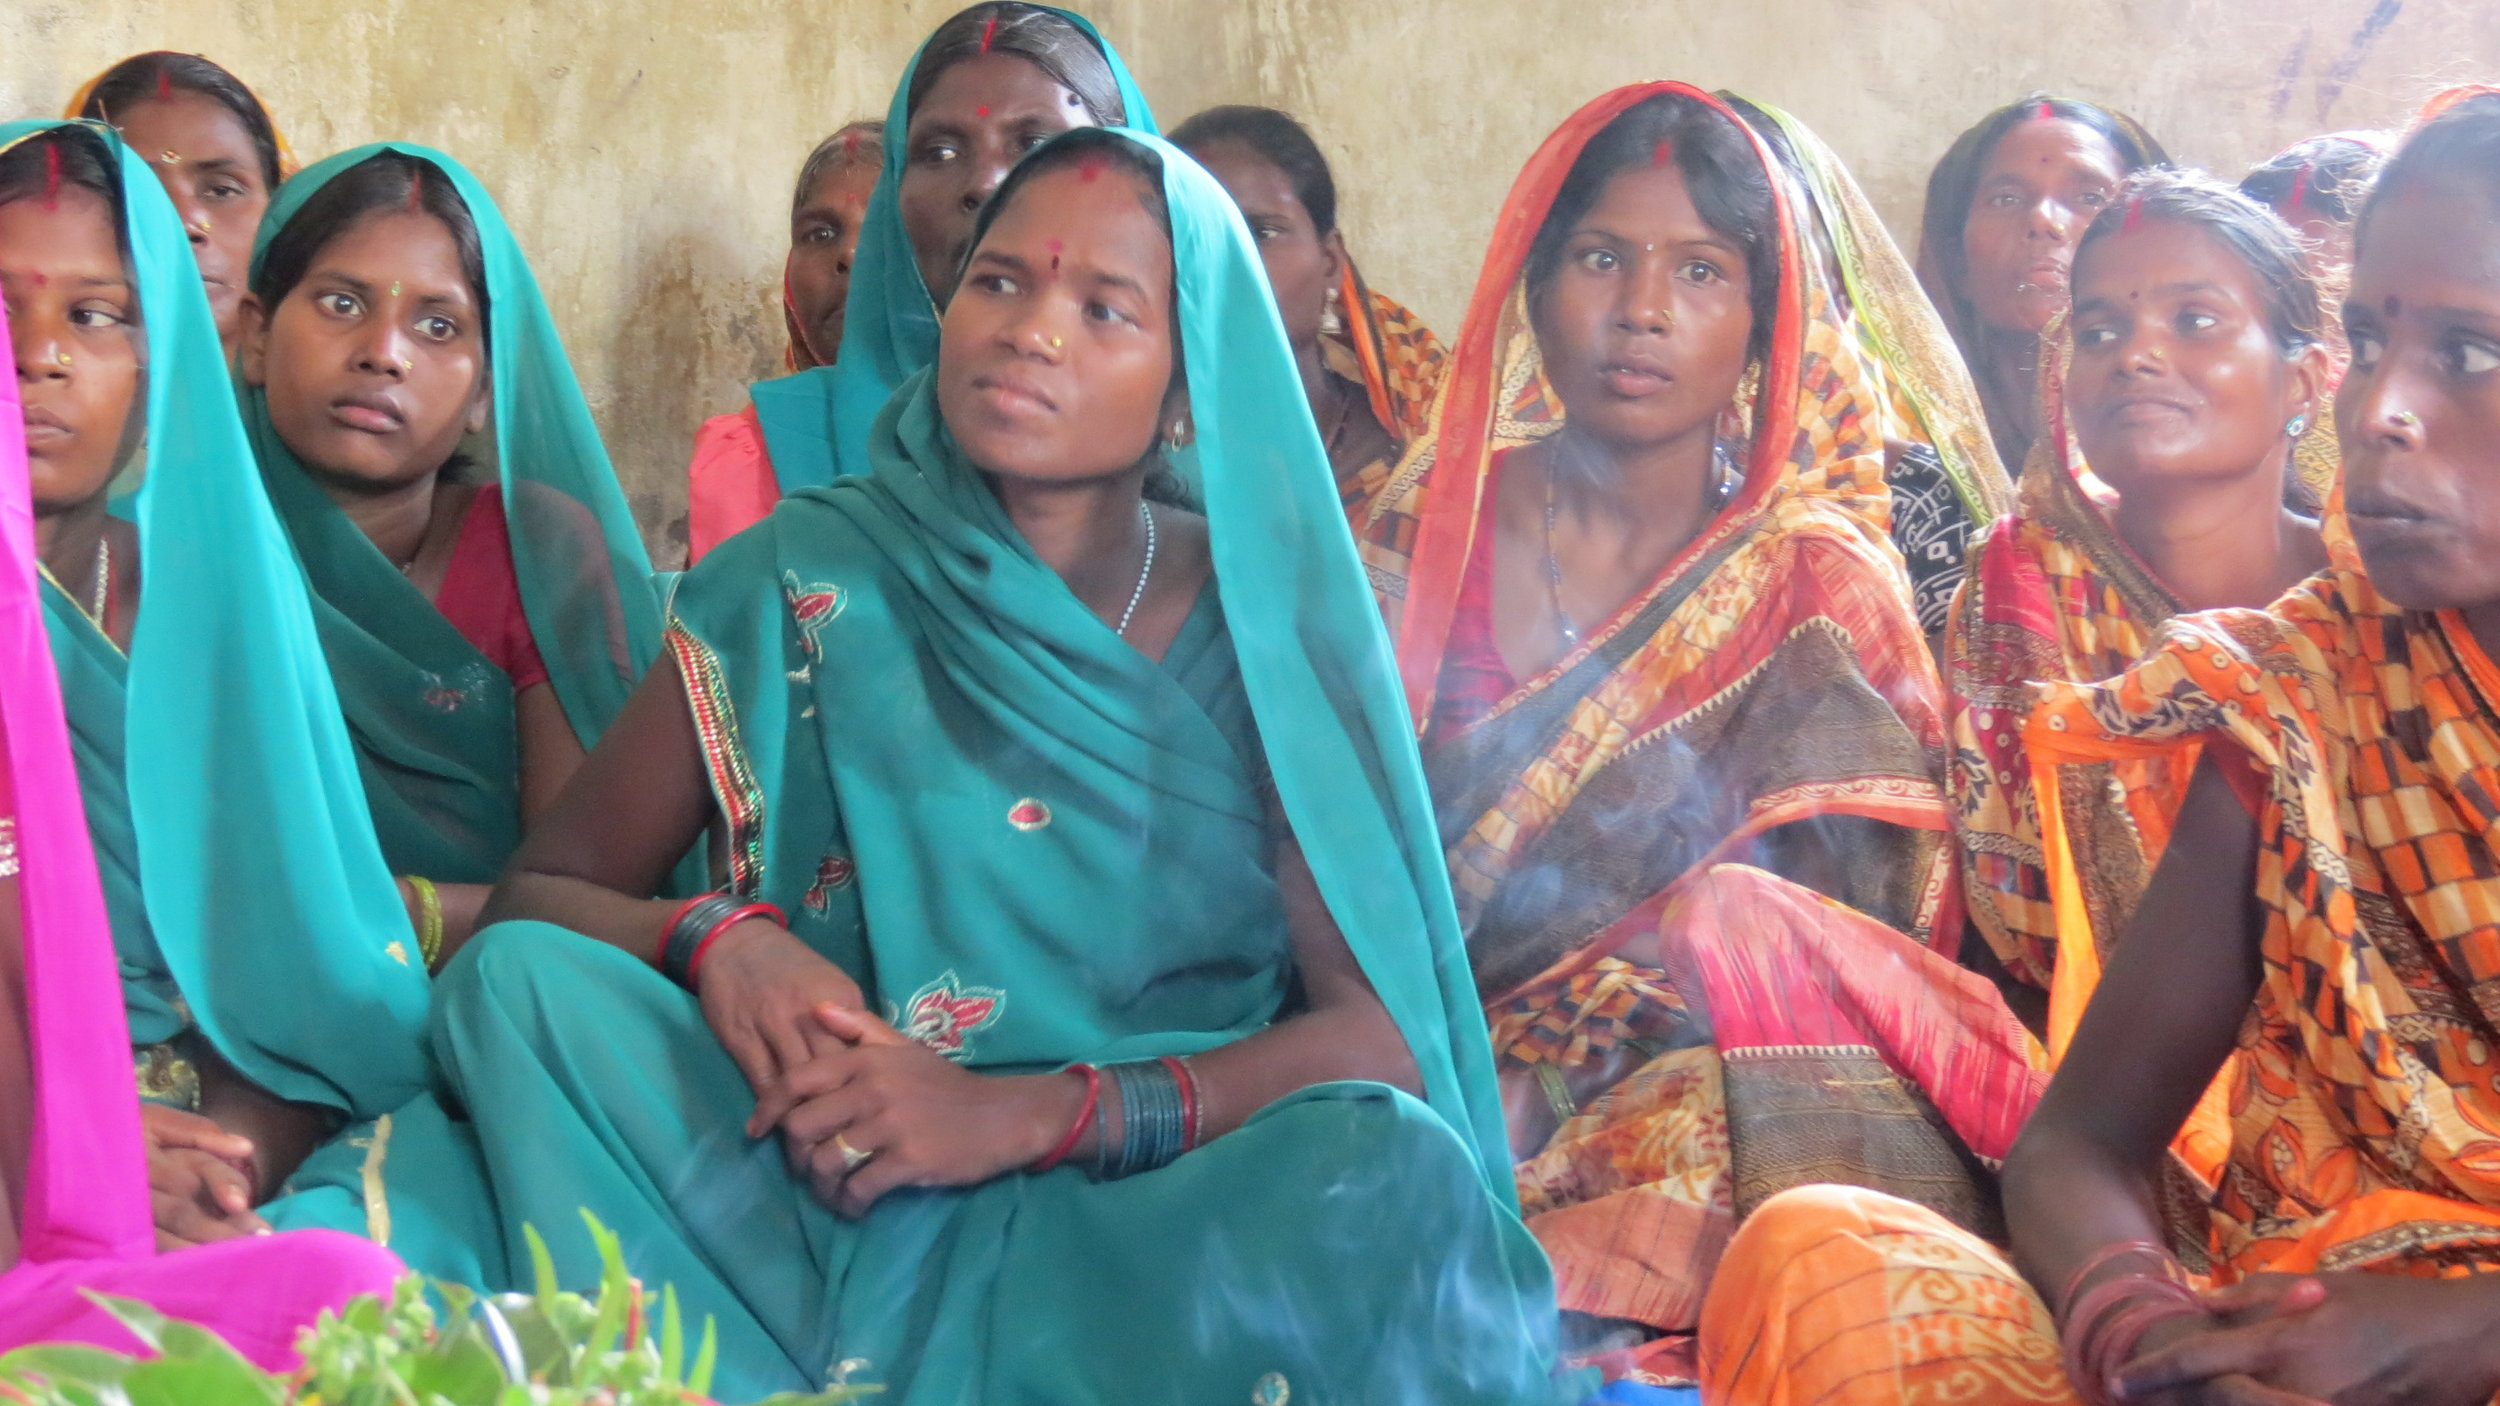 Gathering together to hear about the impact of Heifer International on these women, their families, and their community